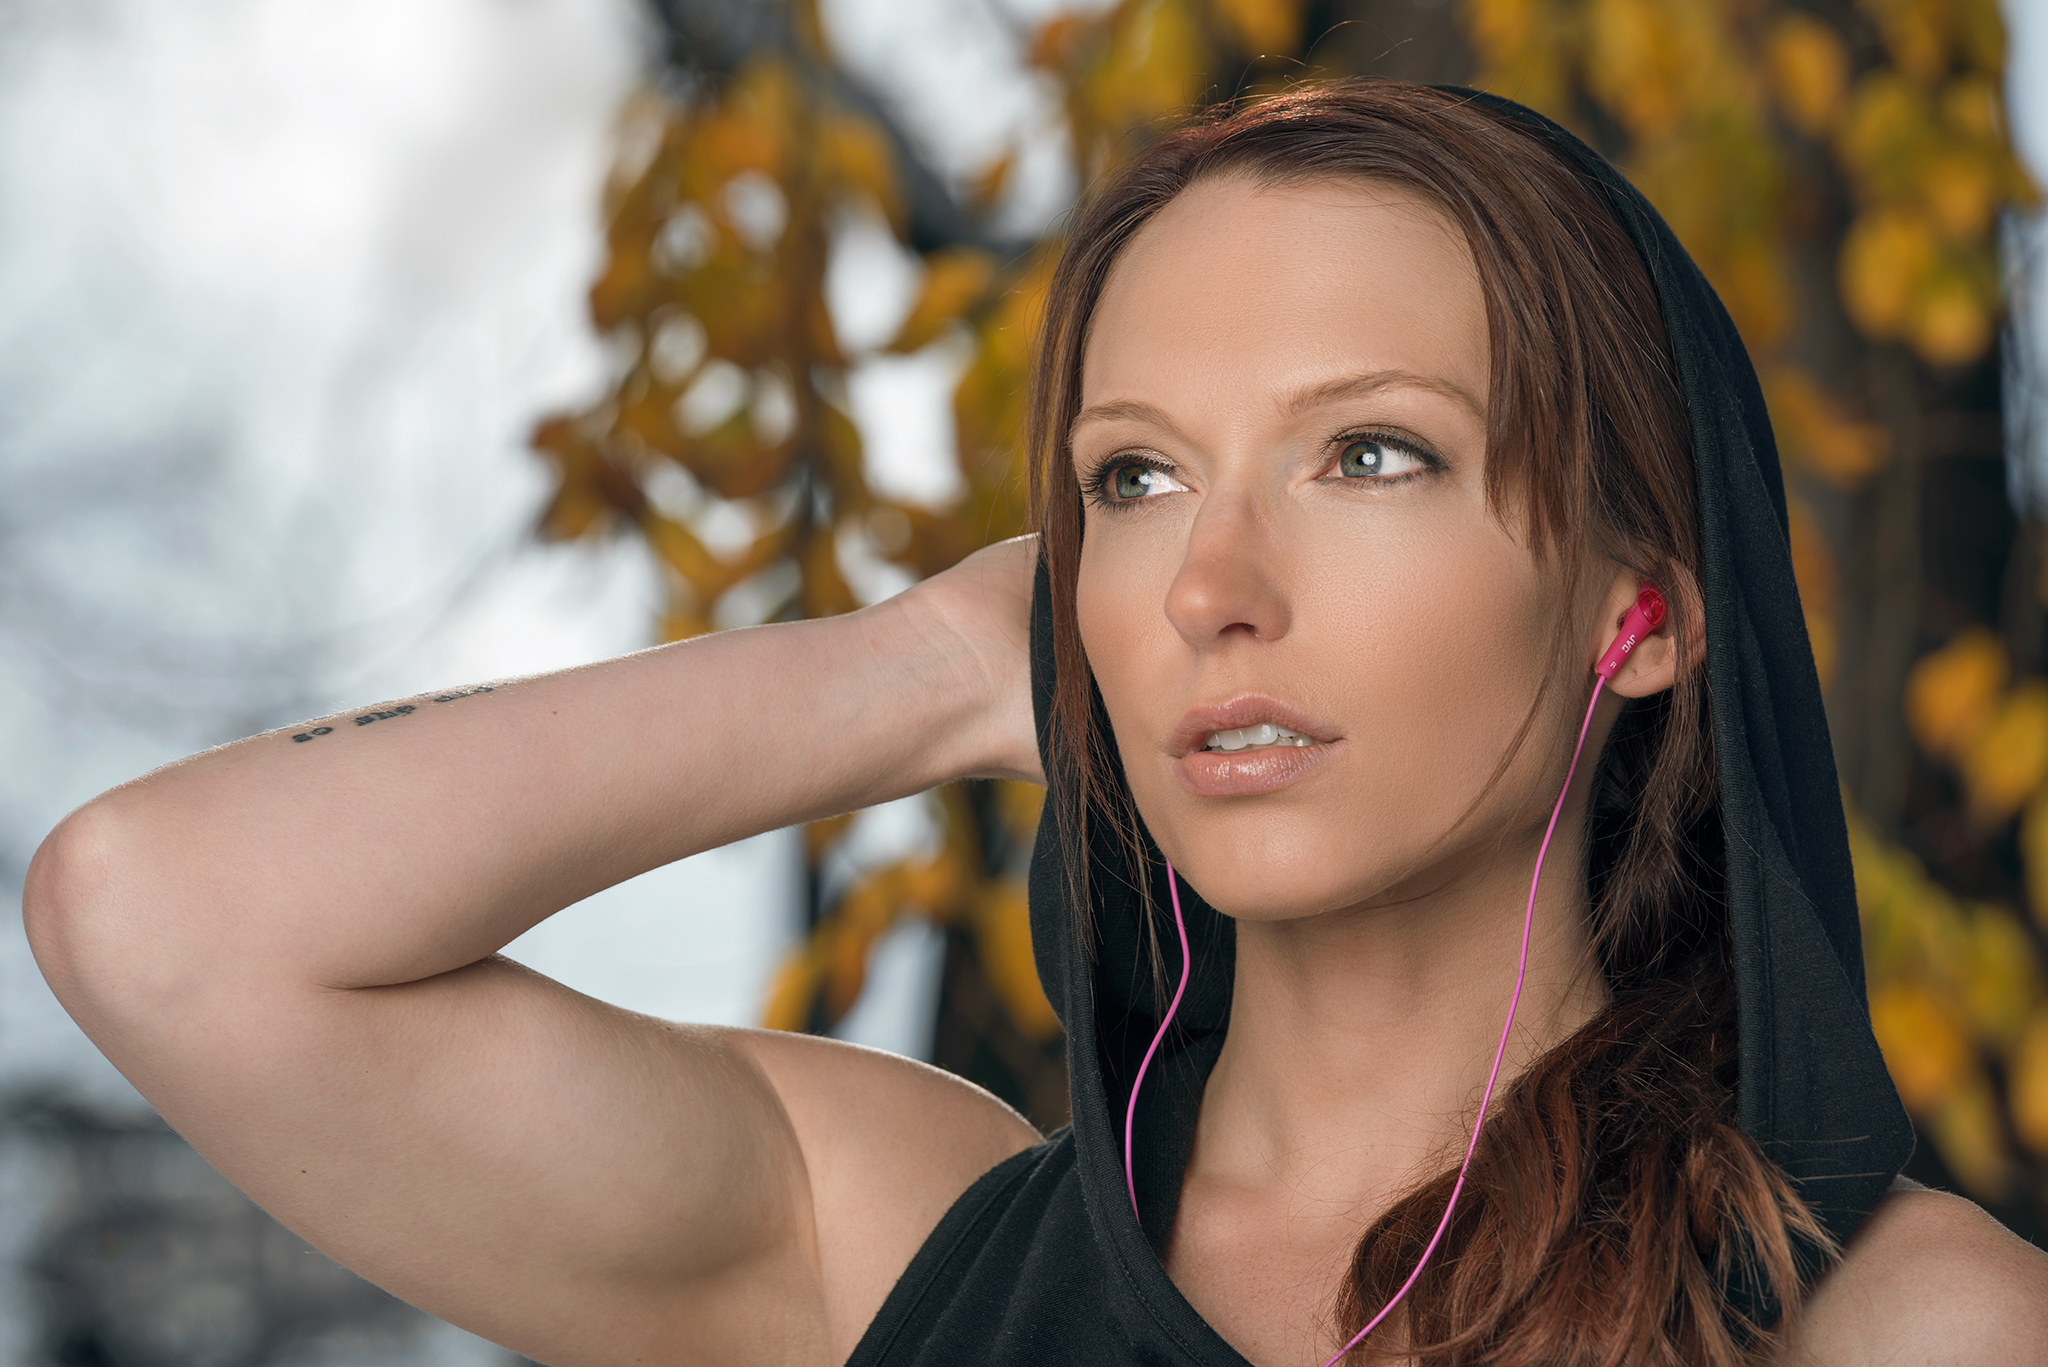 Portrait of female fitness model with JVC headphones